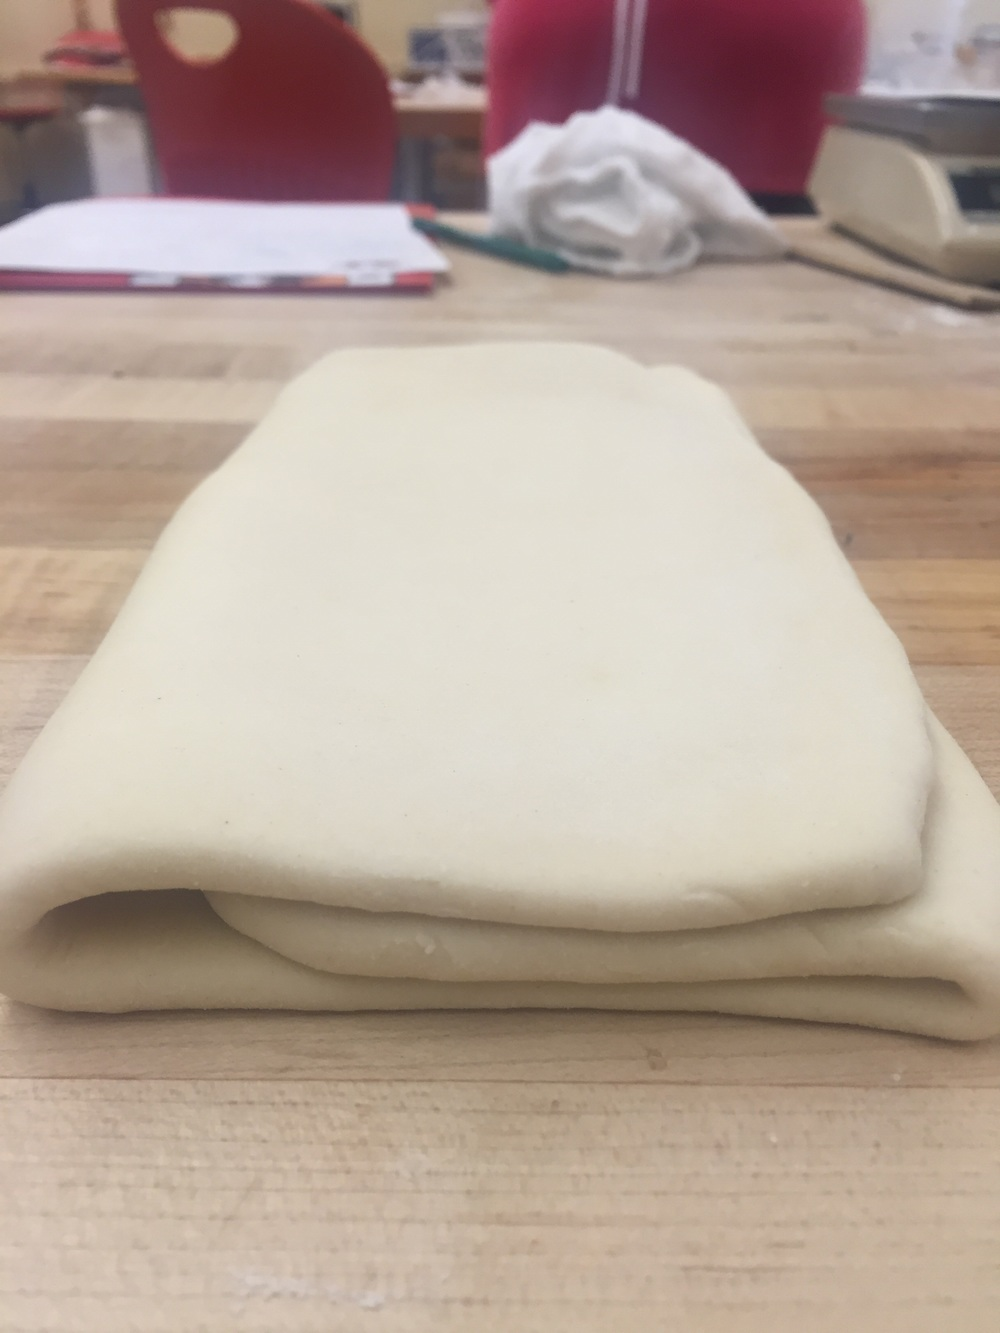 After the second fold - 19 layers of doughy, buttery goodness!